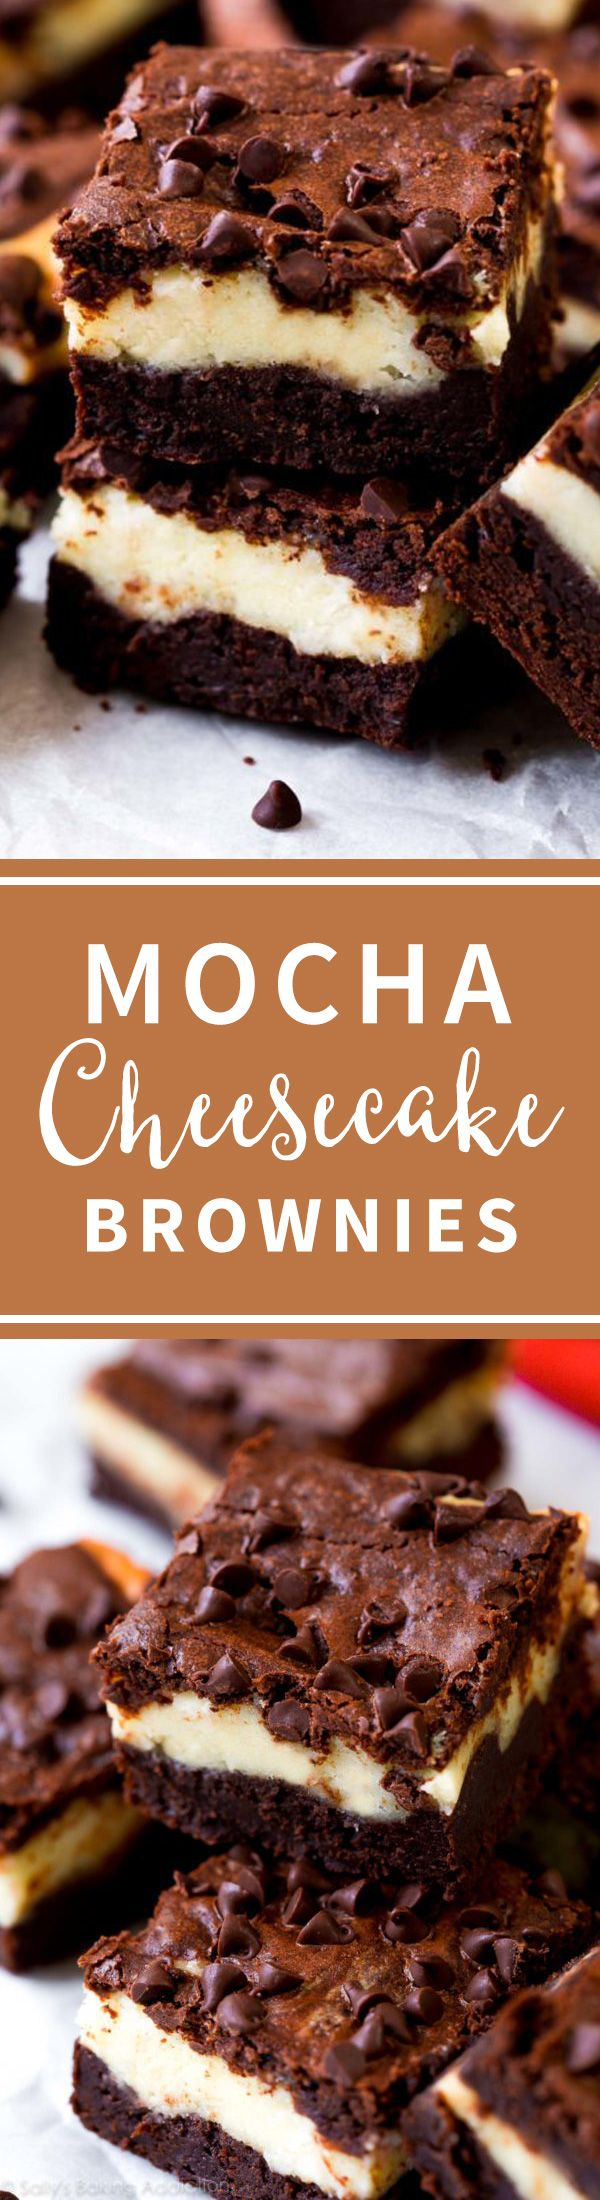 Mocha cheesecake brownies are easy, fudgy, delicious, and layered cheesecake brownies! Recipe on sallysbakingaddiction.com